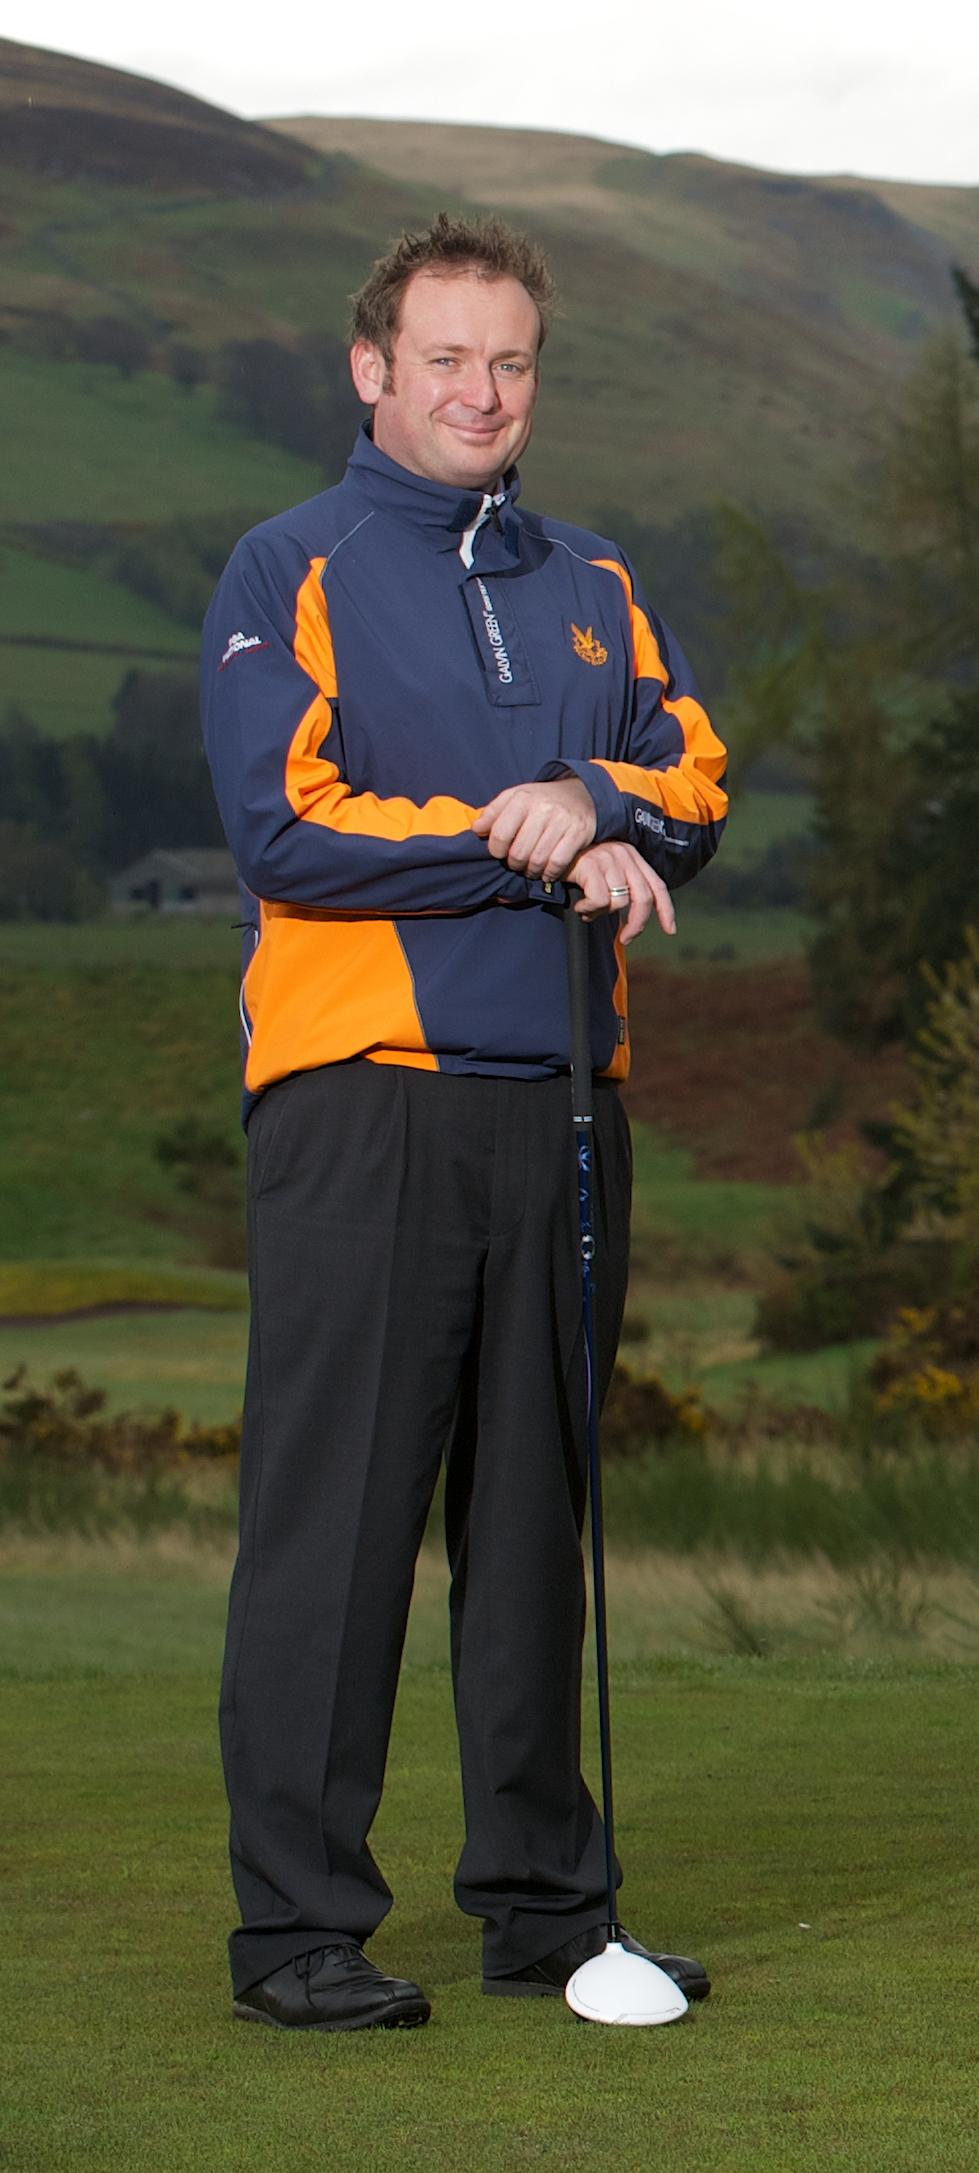 Andrew Jowett, head professional at The Gleneagles Hotel.